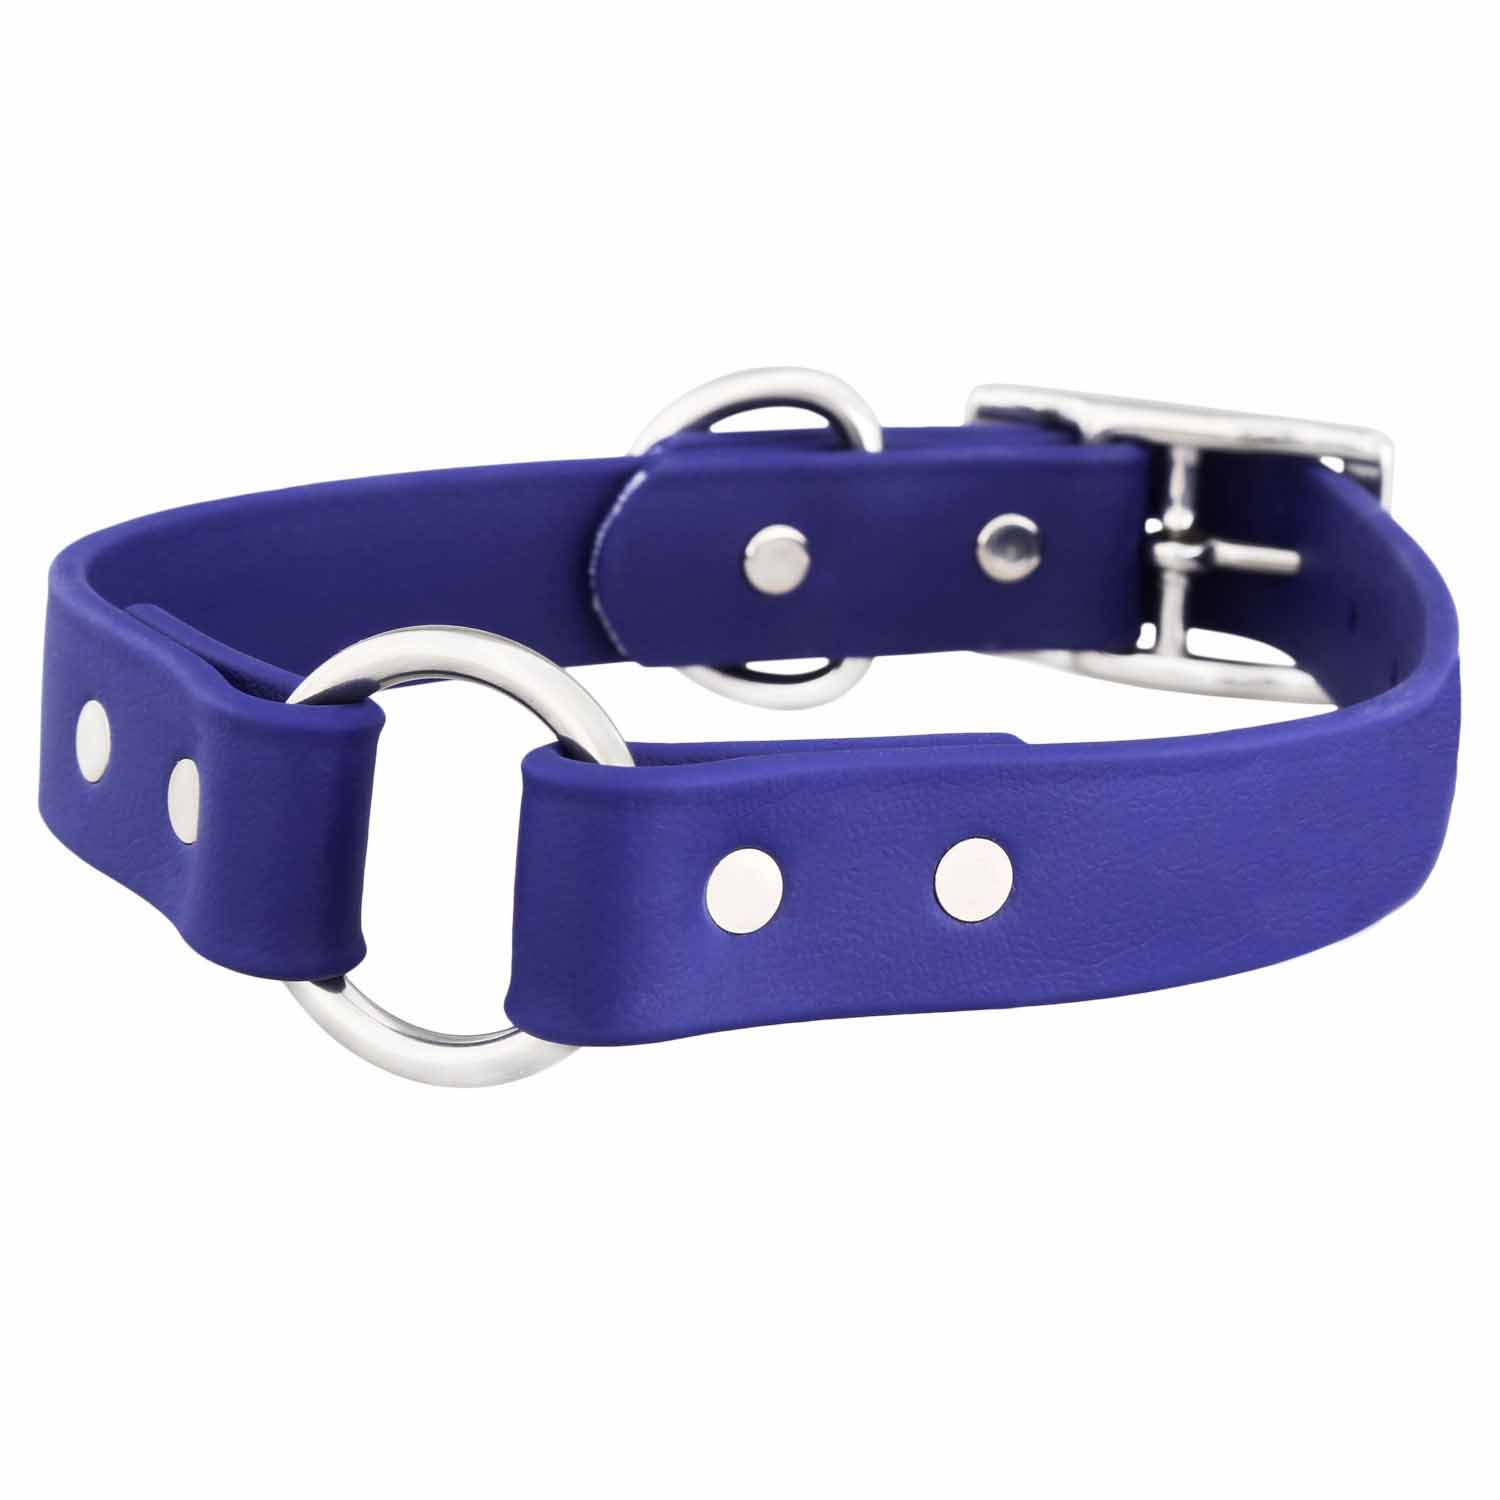 Waterproof Safety Dog Collar - Blue